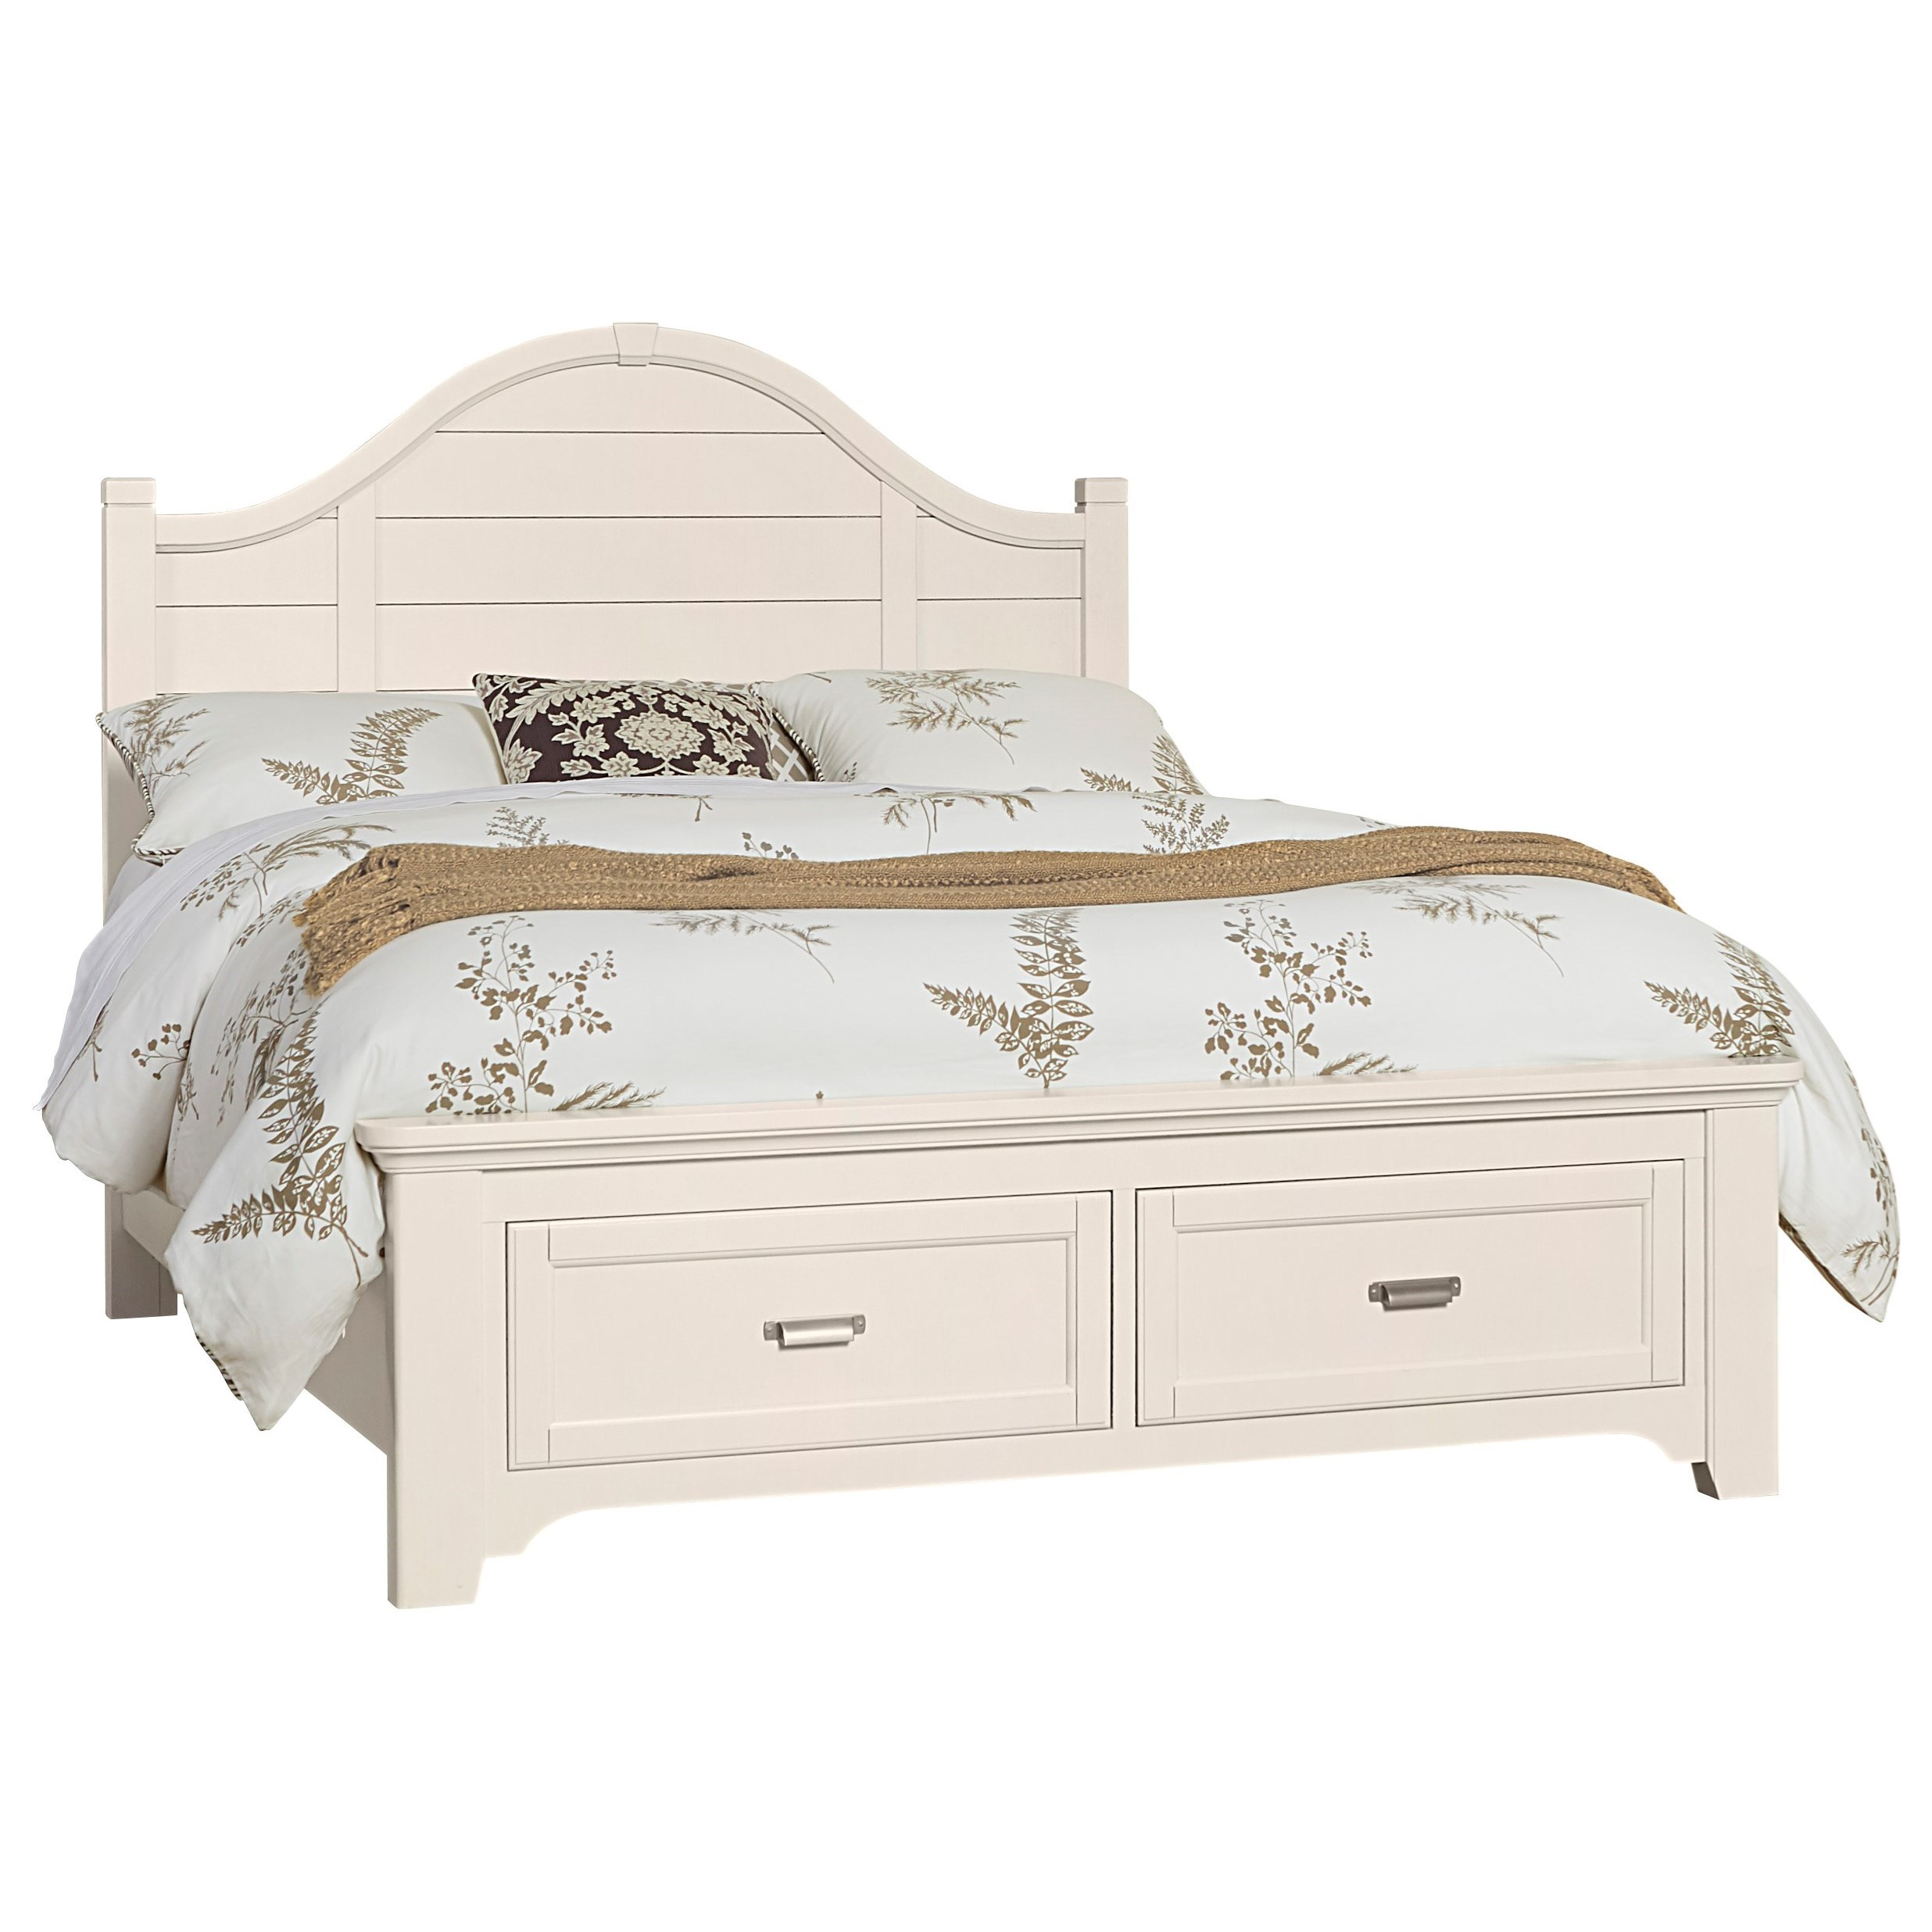 Bungalow King Arch Storage Bed by Vaughan-Bassett at Crowley Furniture & Mattress